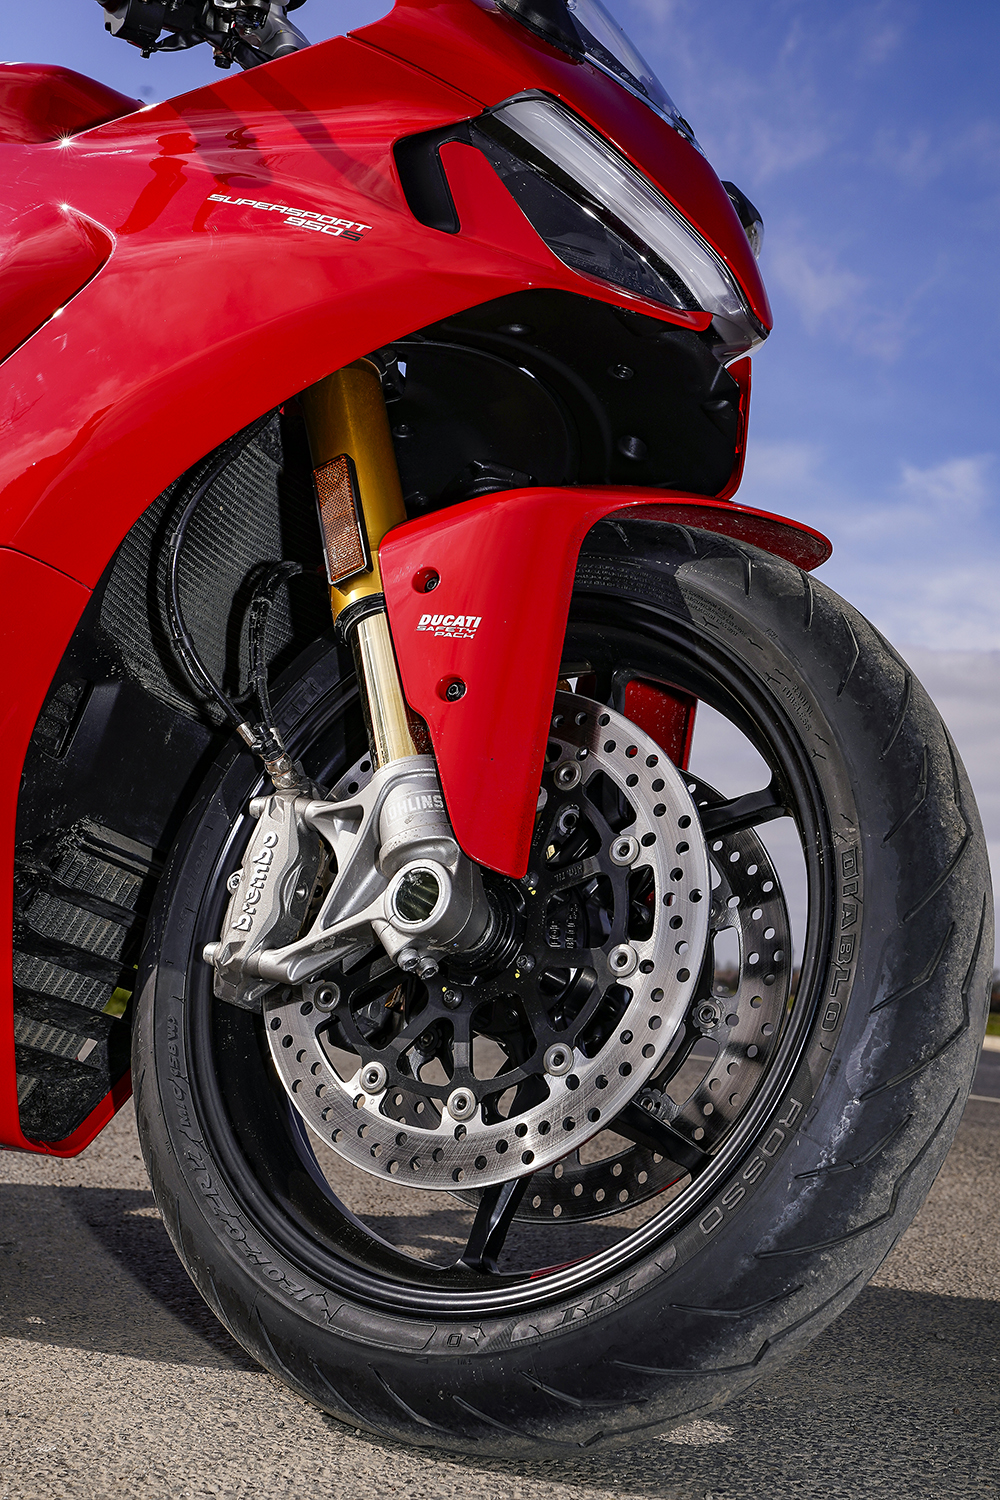 Ducati SuperSport 950 S Brembo and Ohlins